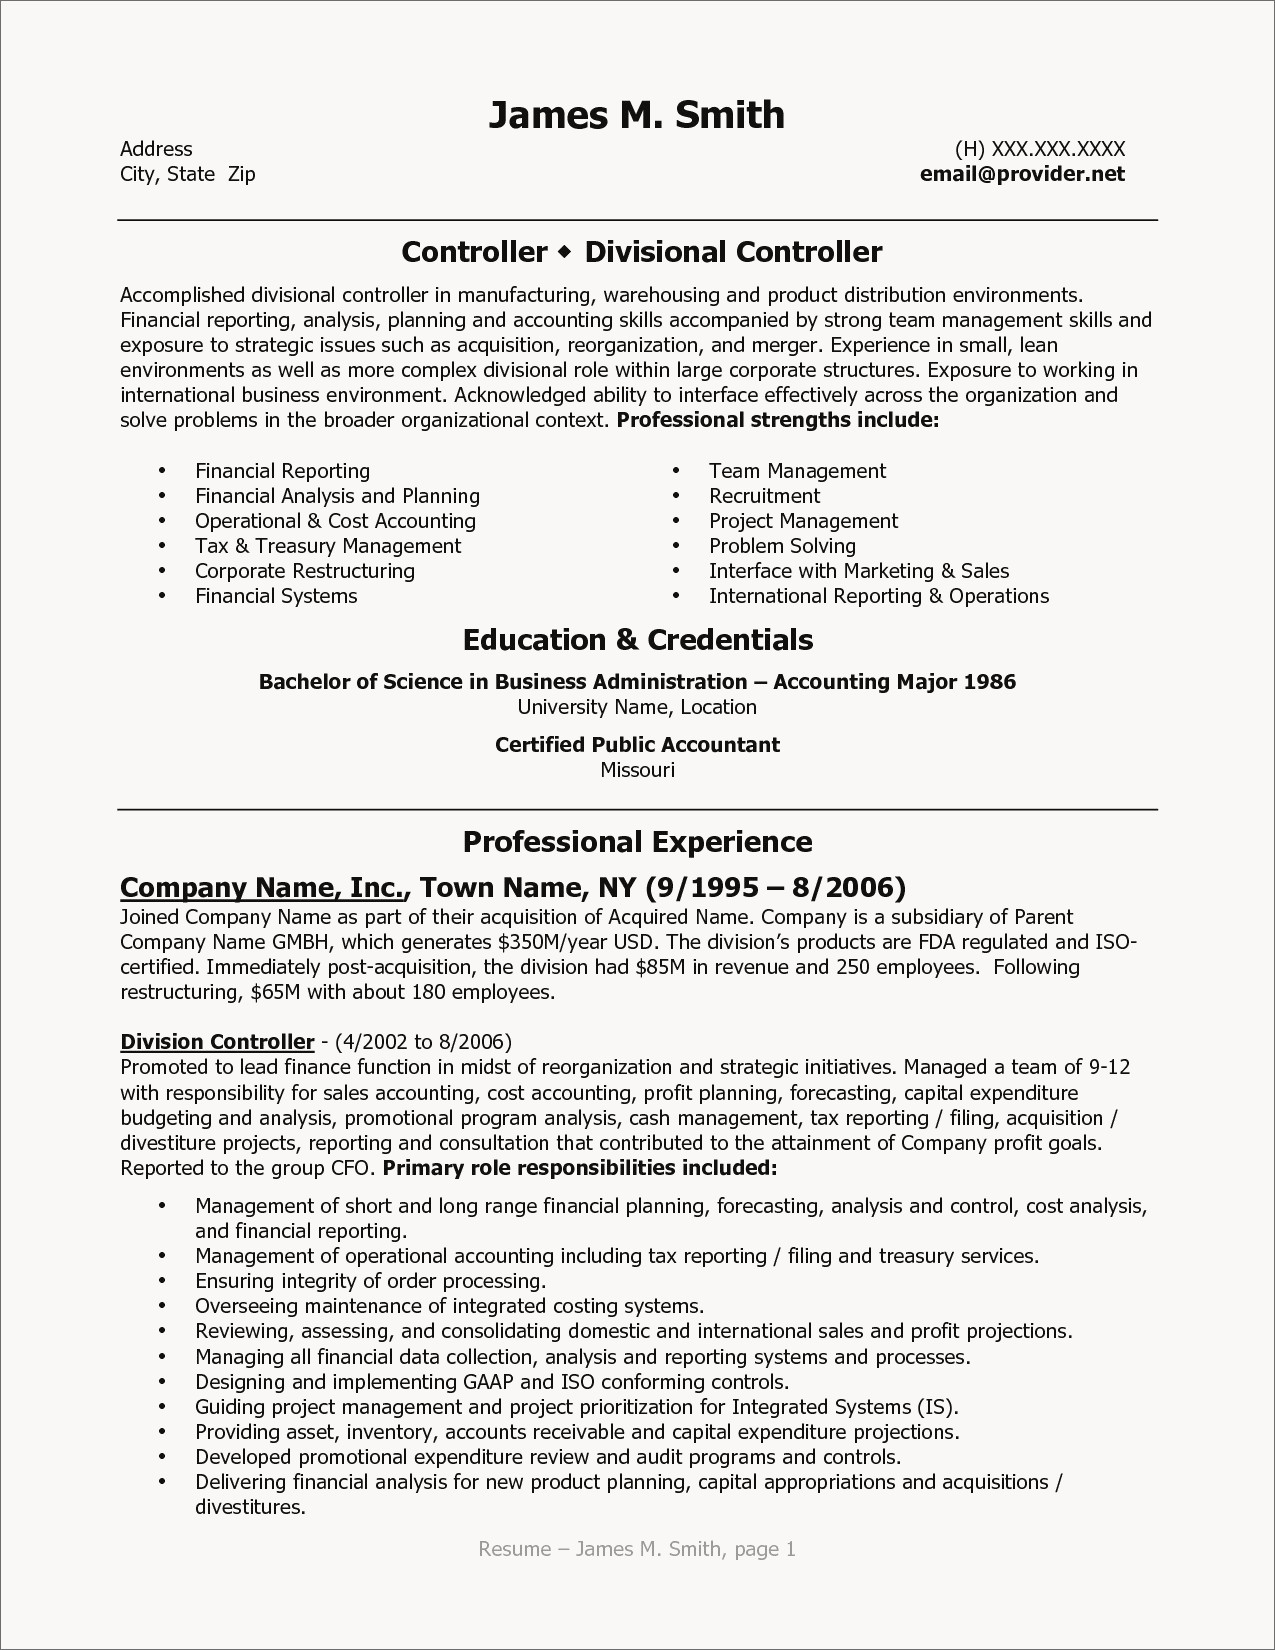 Actor Resume Template - Business Plan Financial Template Awesome Cfo Resume Template